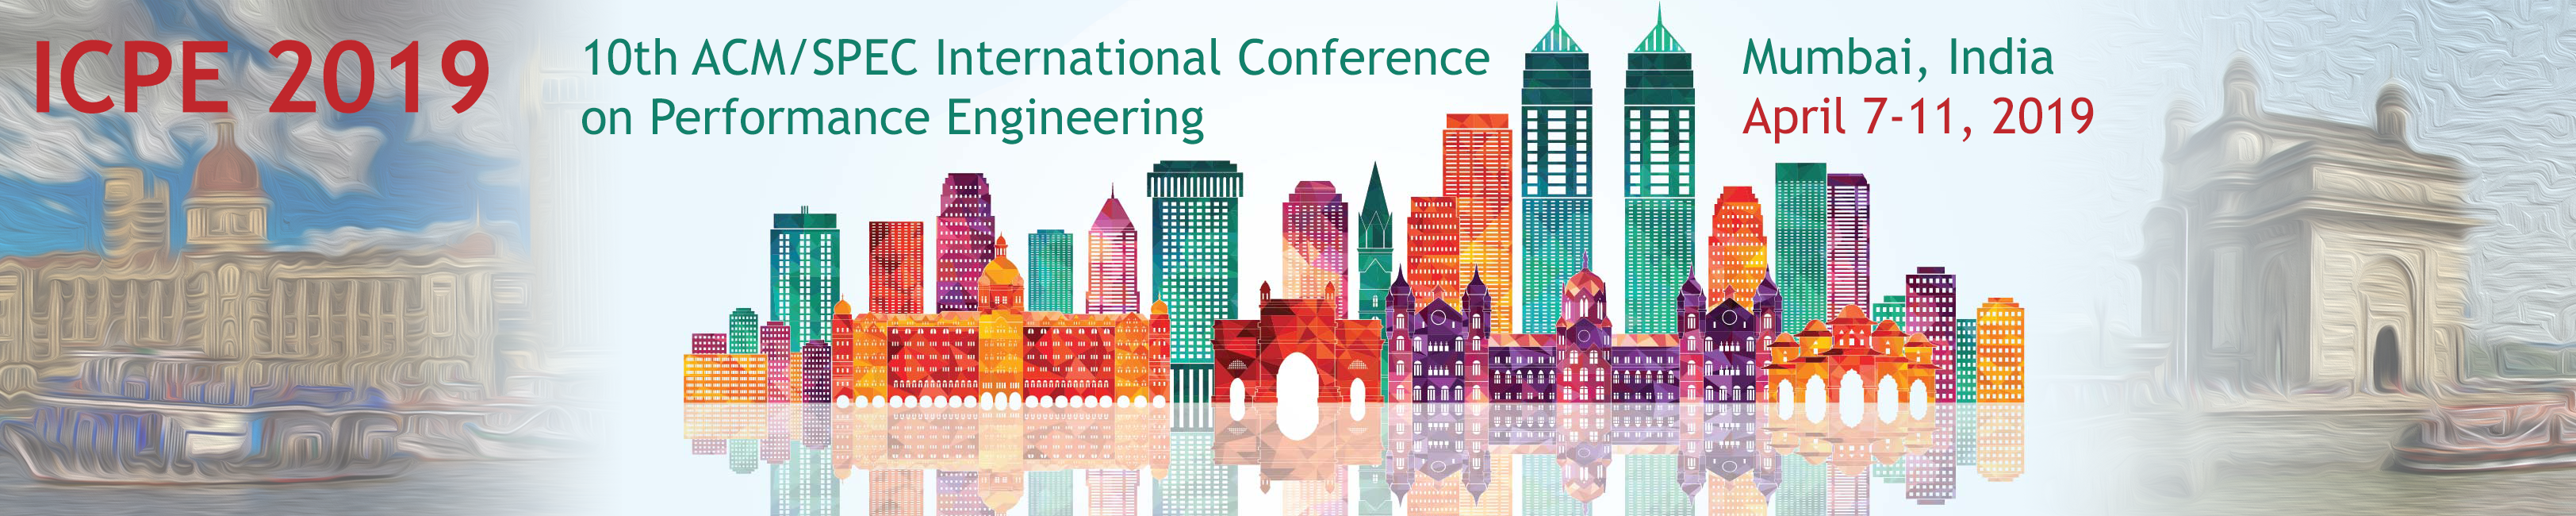 International Conference on Performance Engineering (ICPE) 2019